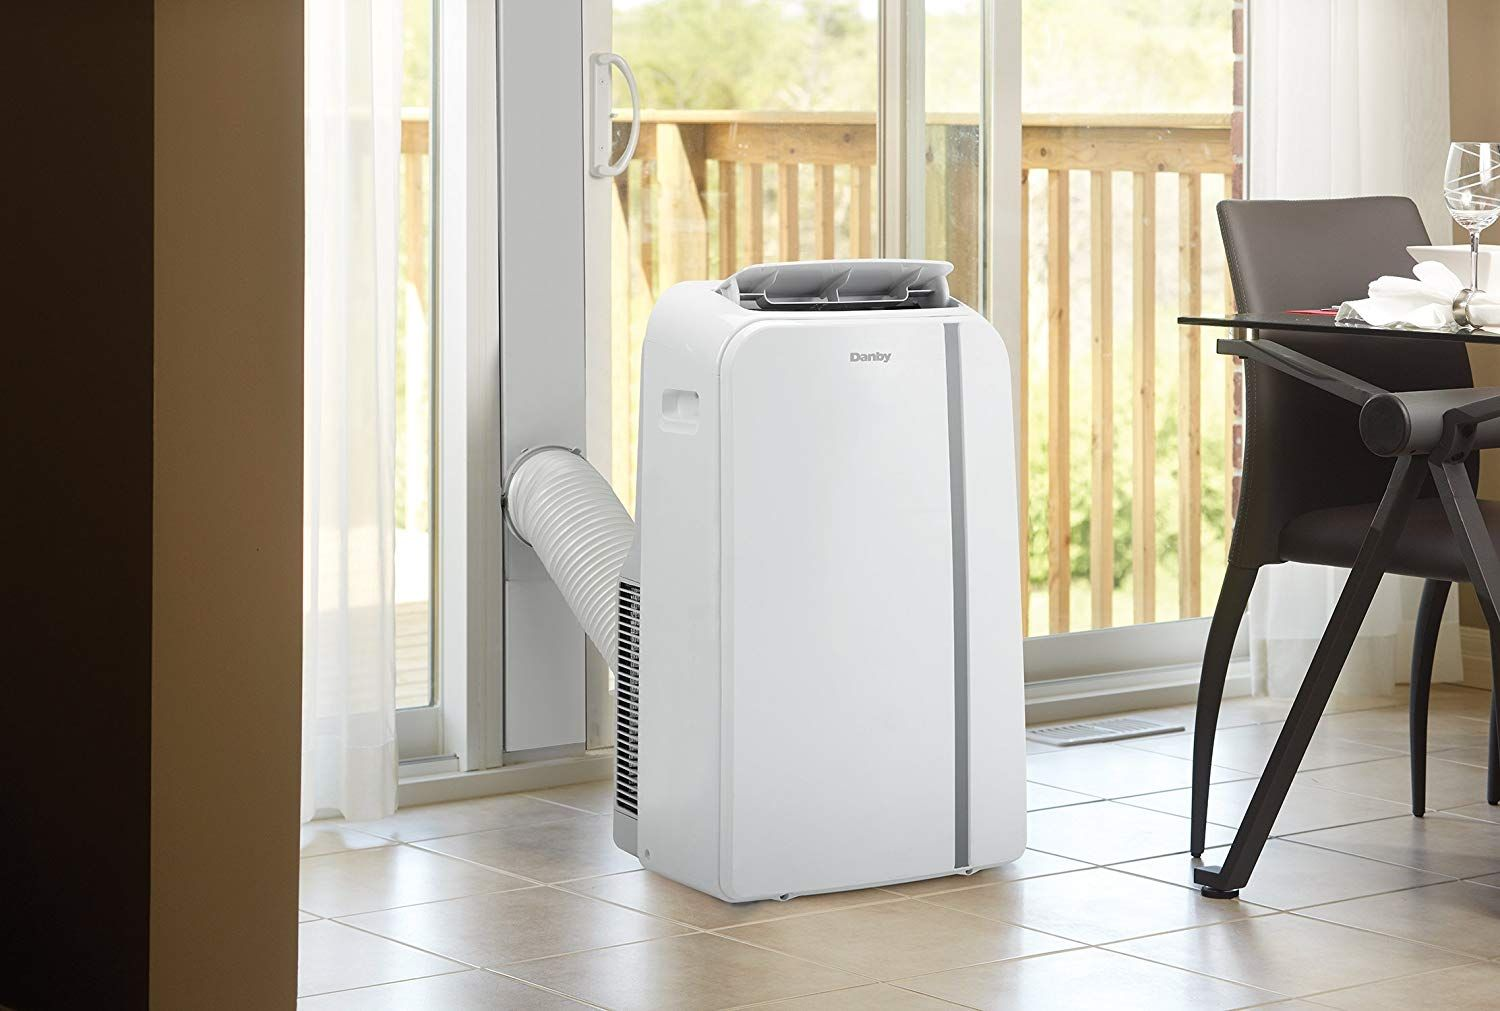 The 10 Best Dual Hose Portable Air Conditioners To Buy For Summer